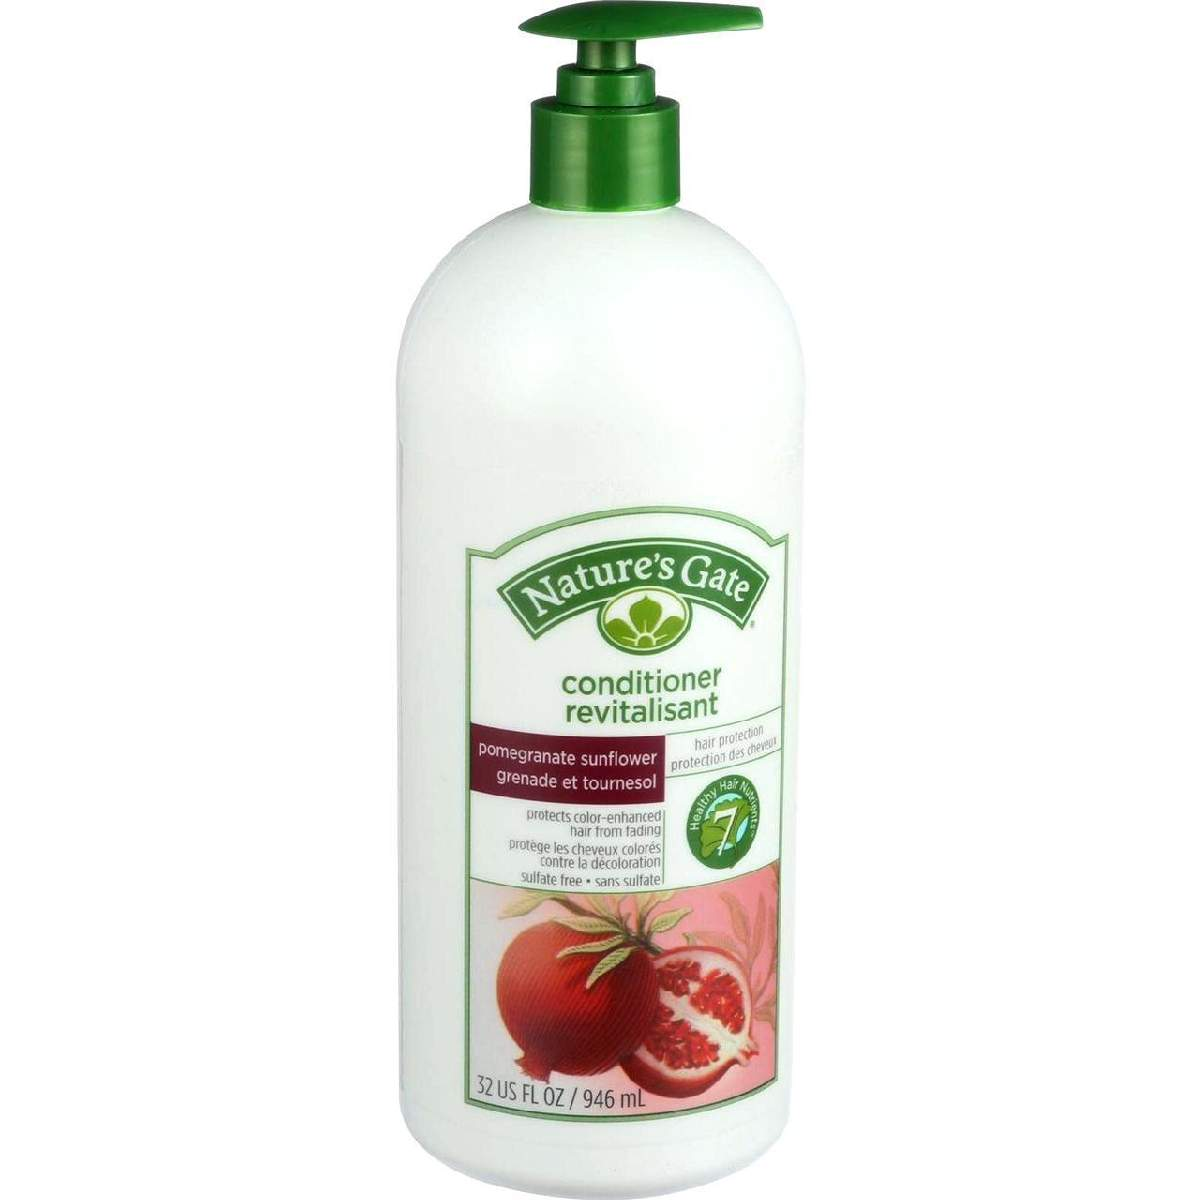 Natures Gate Conditioner - Pomegranate And Sunflower Hair Defense - 32 Oz